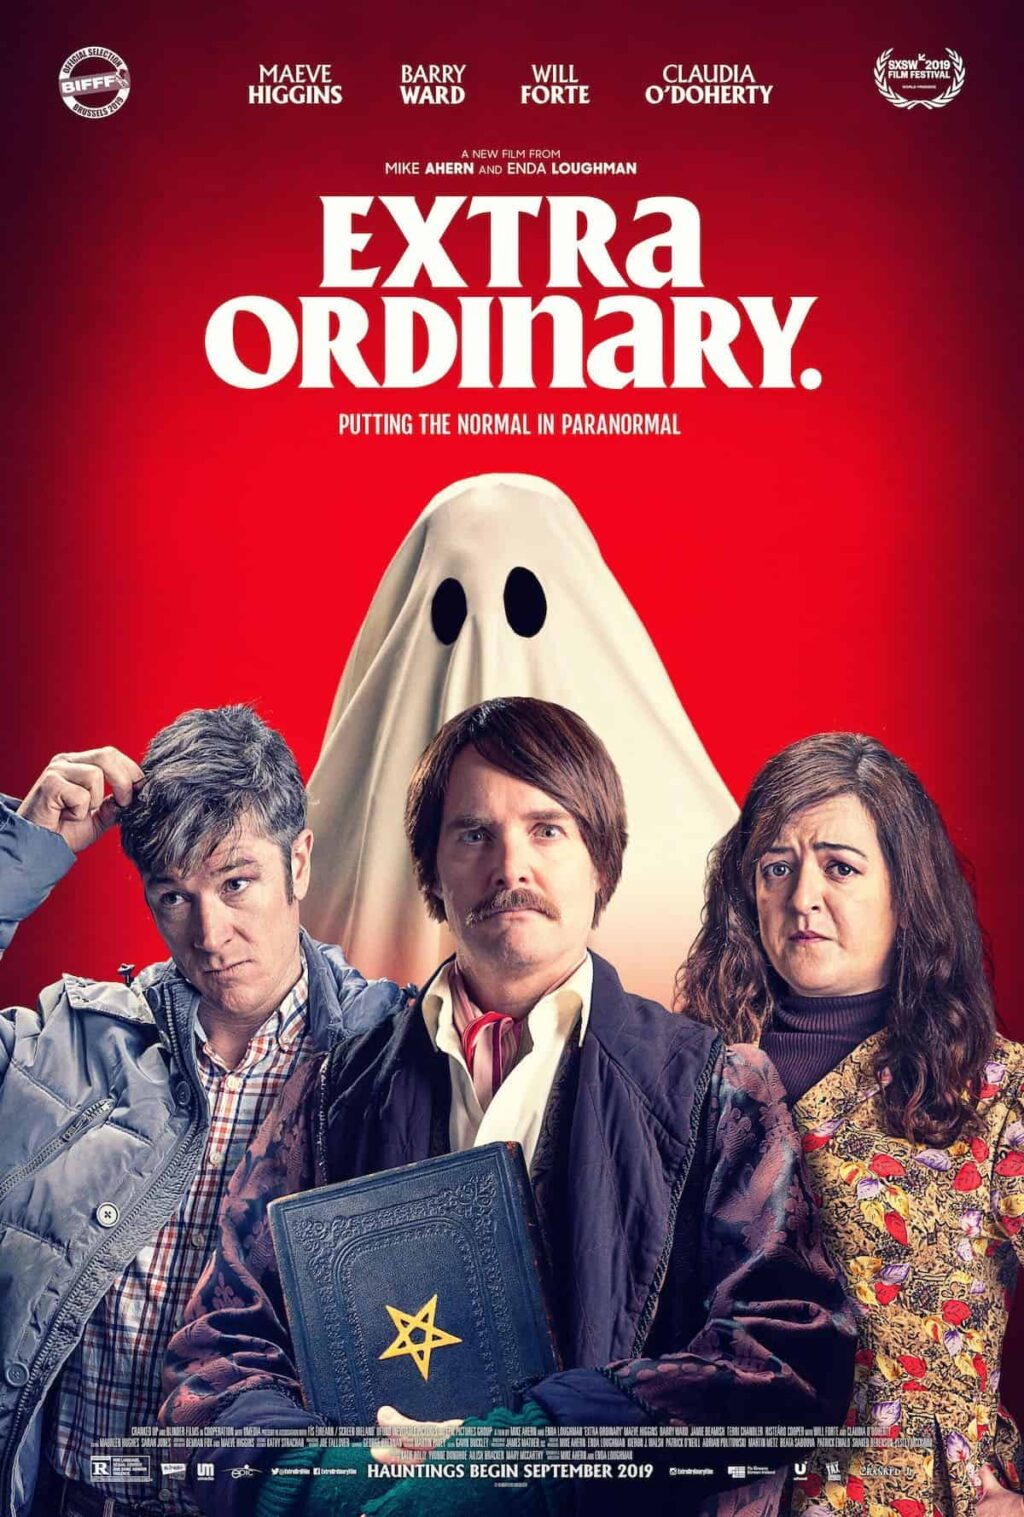 Approved ExtraOrdinary Keyart 1024x1517 - Supernatural Comedy EXTRA ORDINARY Trailer Gets Spooky GIFs